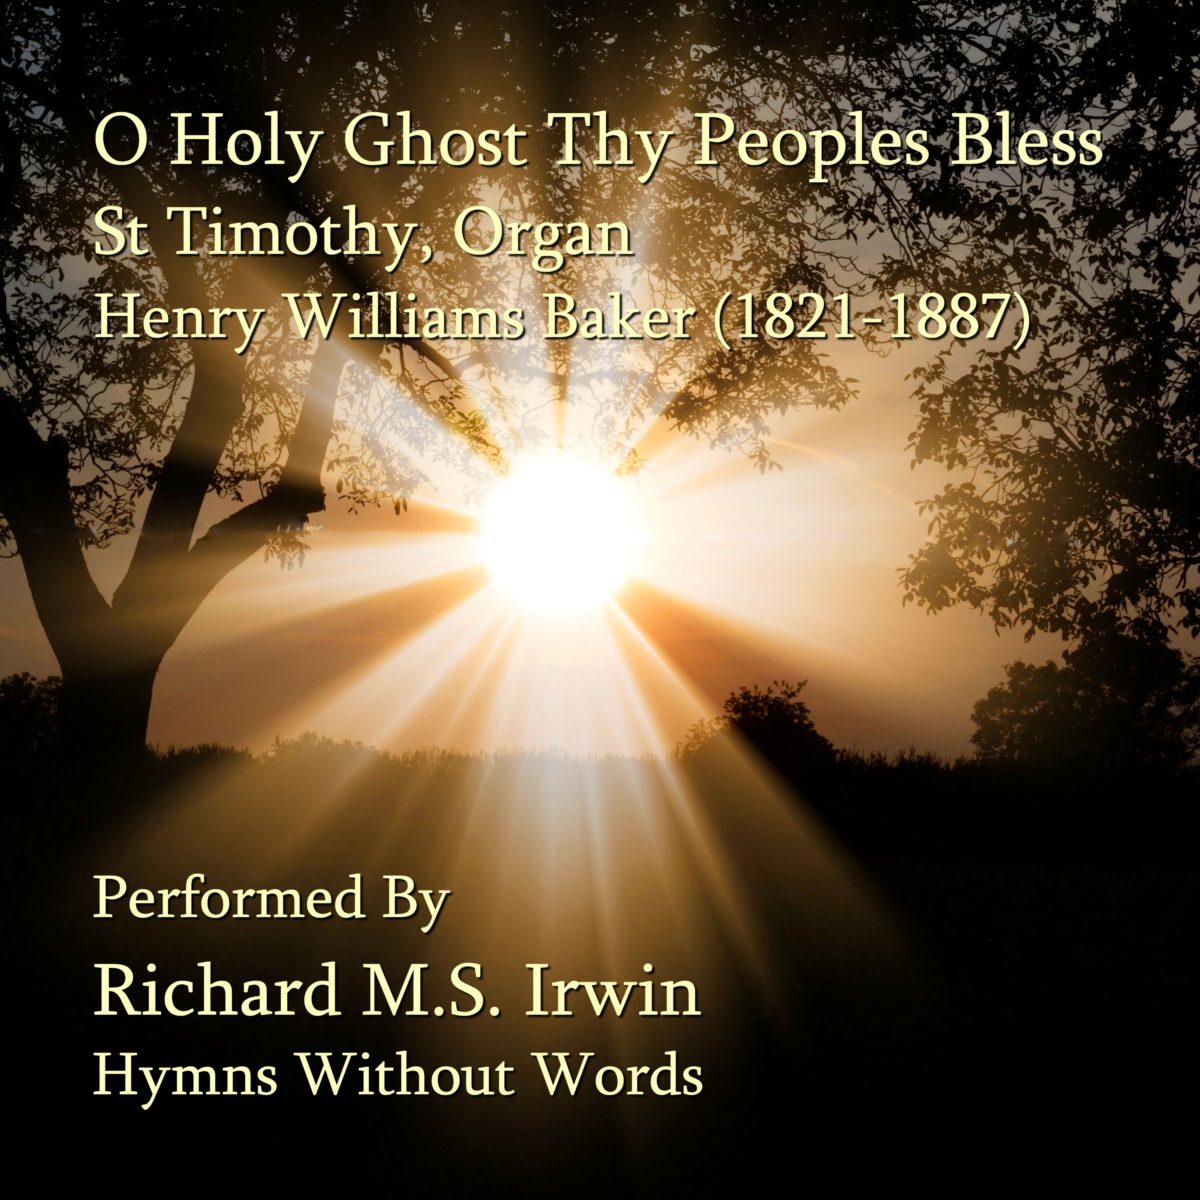 O Holy Ghost Thy Peoples Bless (St Timothy, Organ, 6 Verses)